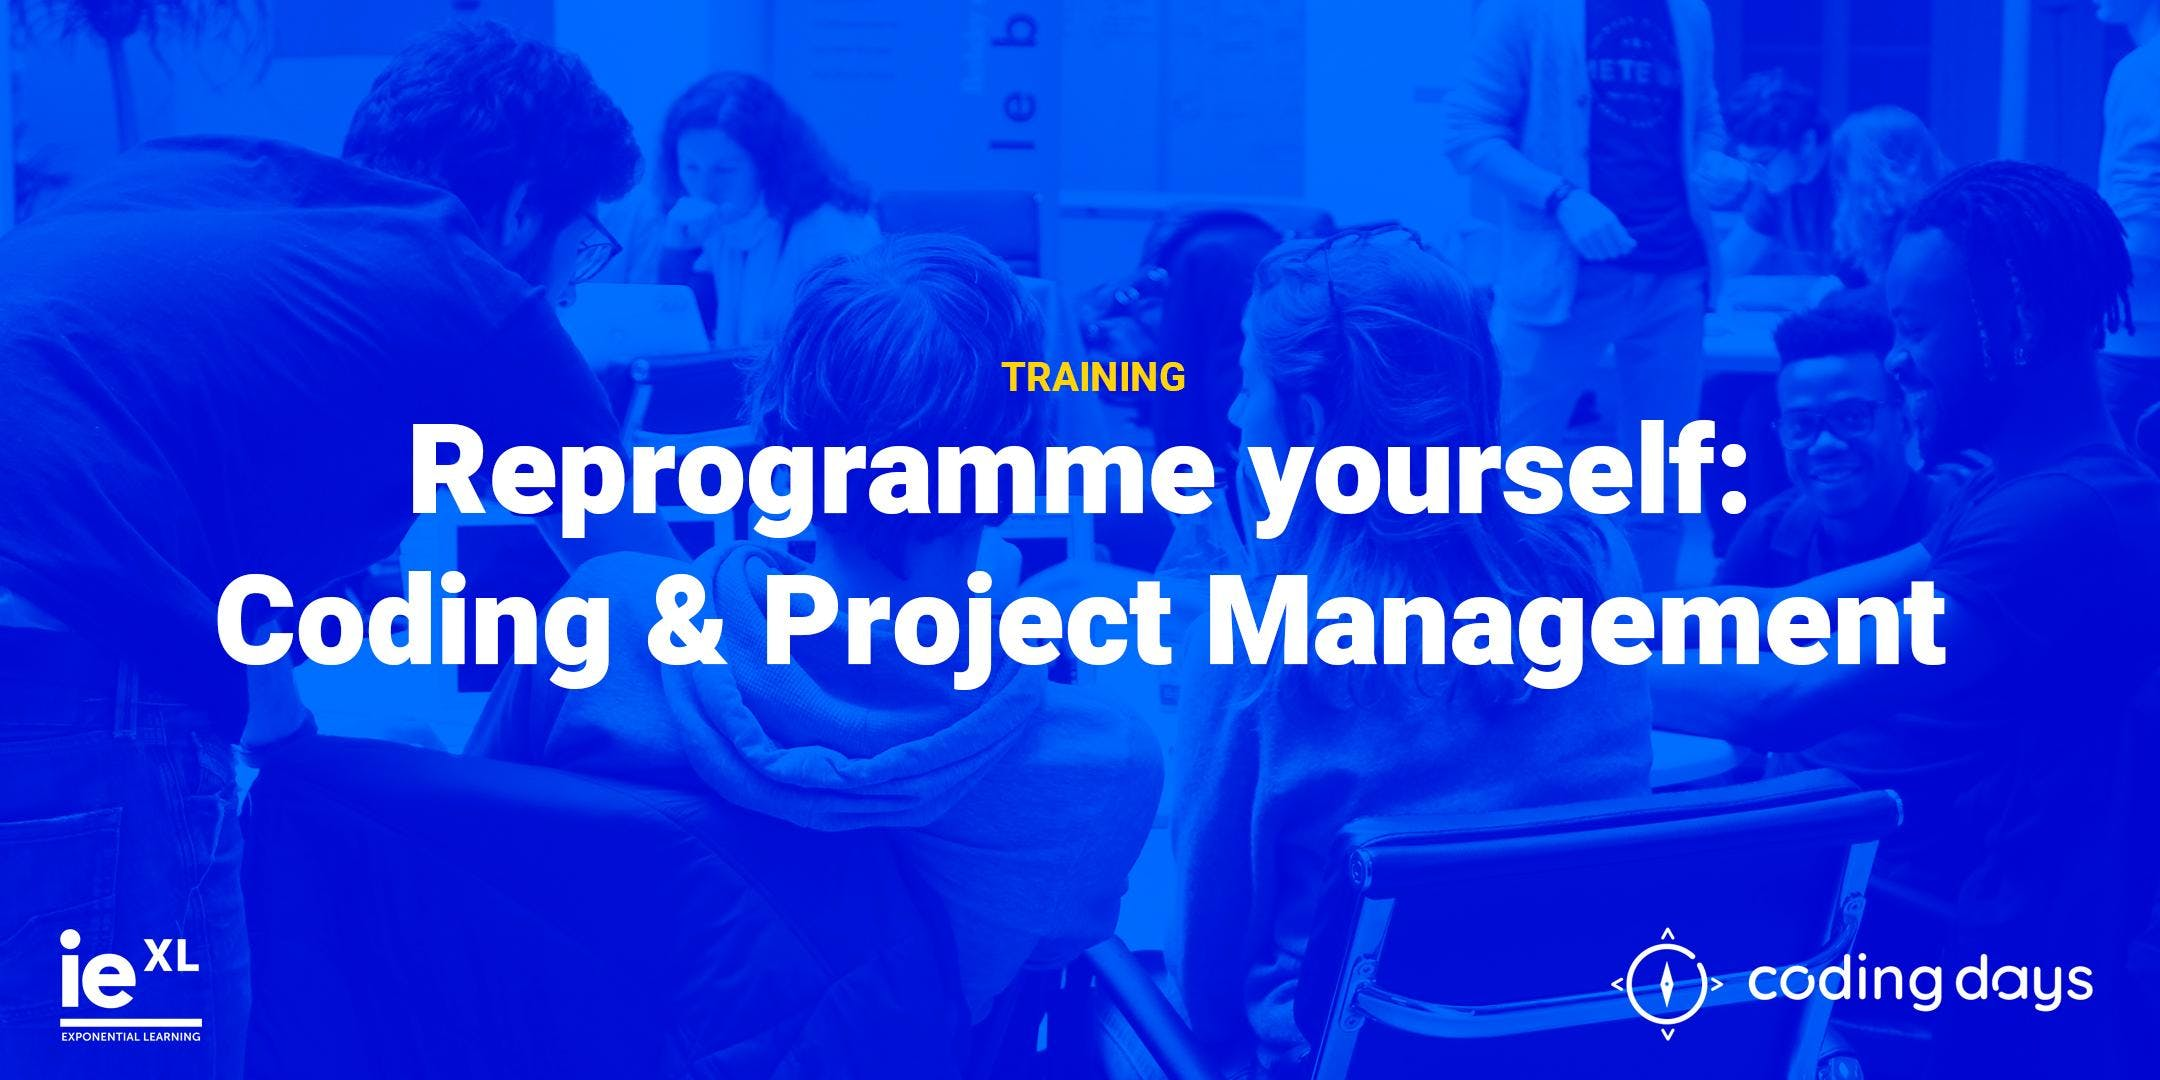 Reprogramme yourself: Coding & Project Management